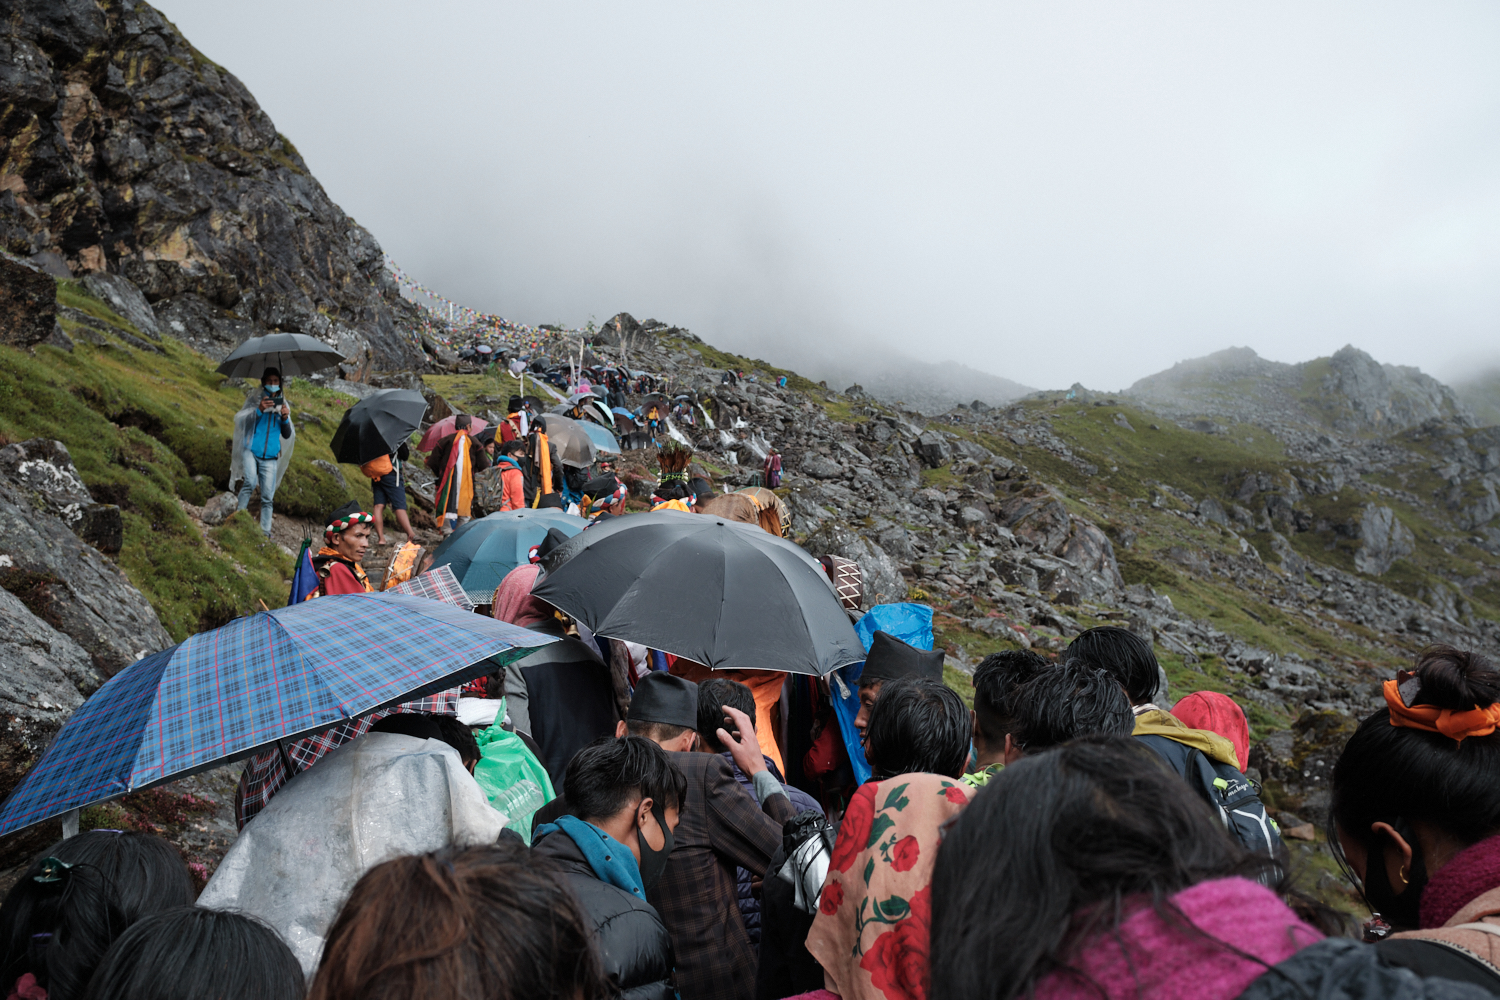 Crowd of people on their way to Trishul Dhara